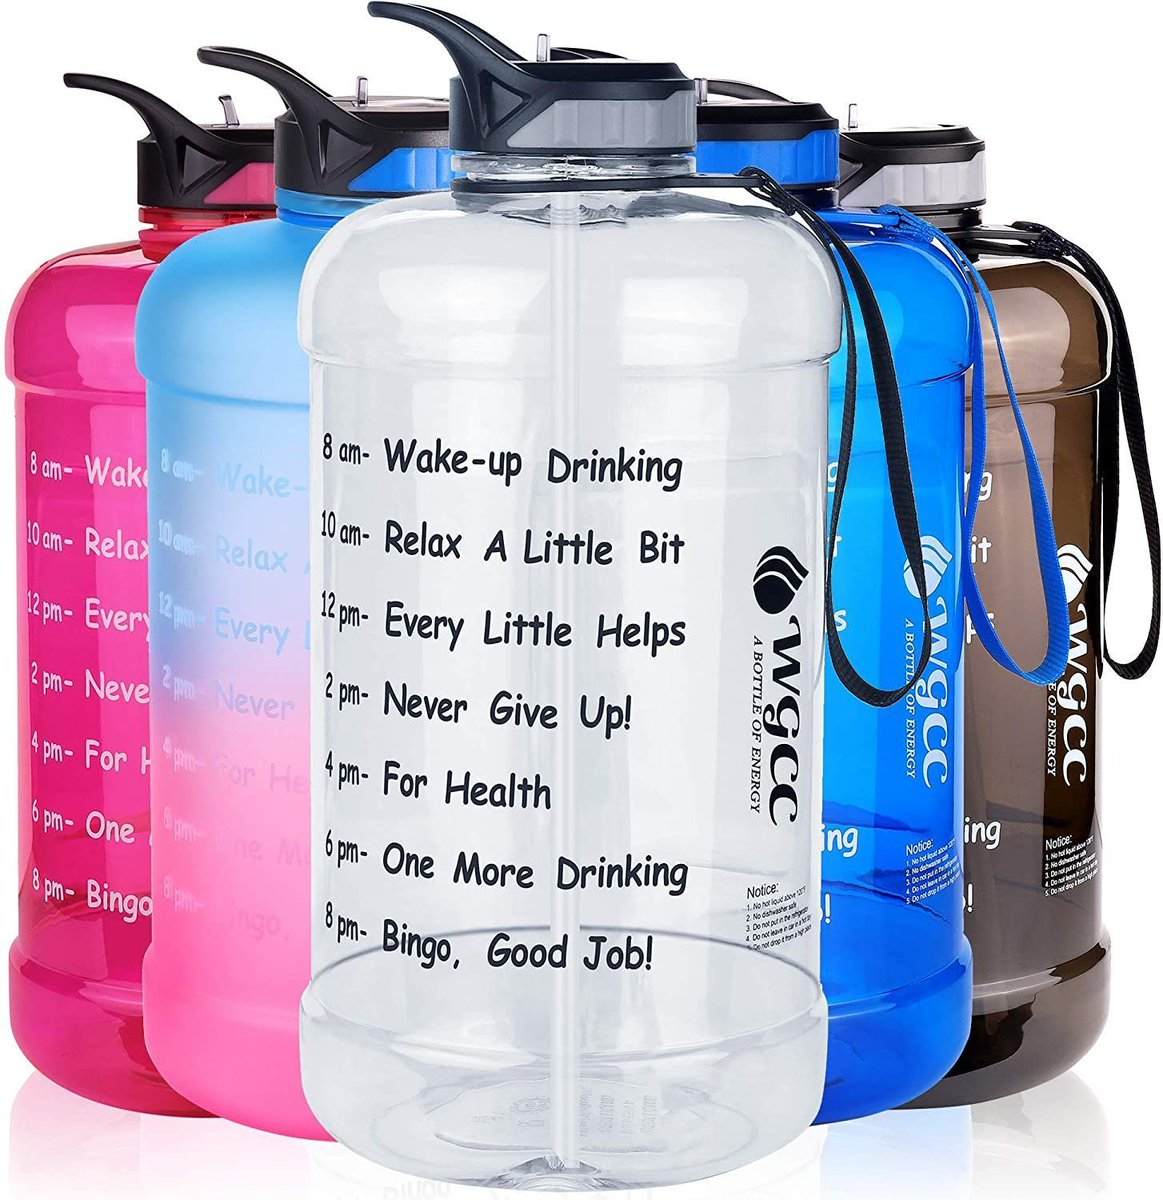 ad: ONLY $9.99   1 Gallon Motivational Water Bottle